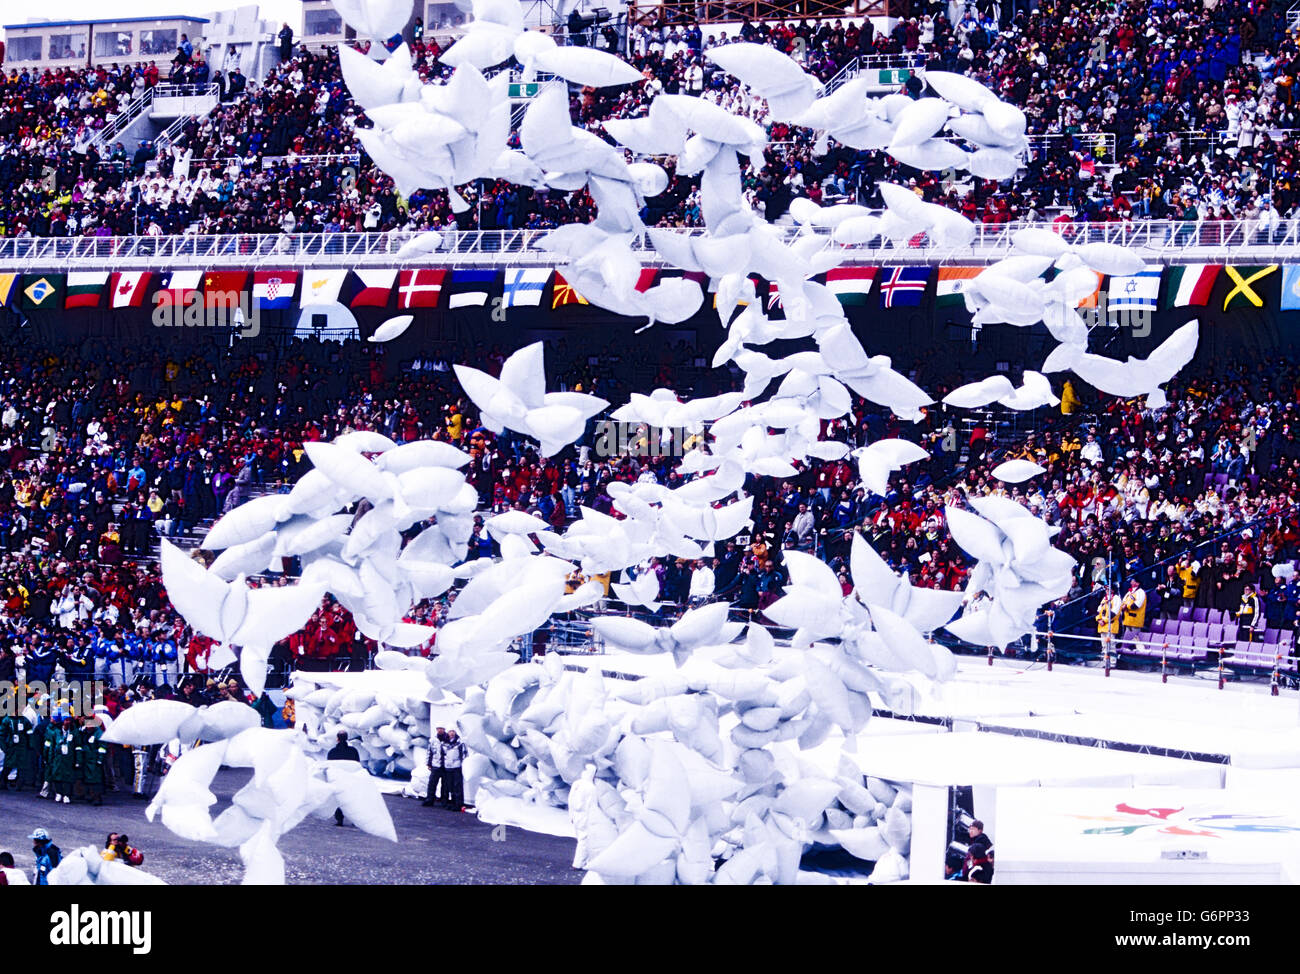 The Opening ceremonies at the 1998 Olympic Winter Games, Nagano, Japan - Stock Image